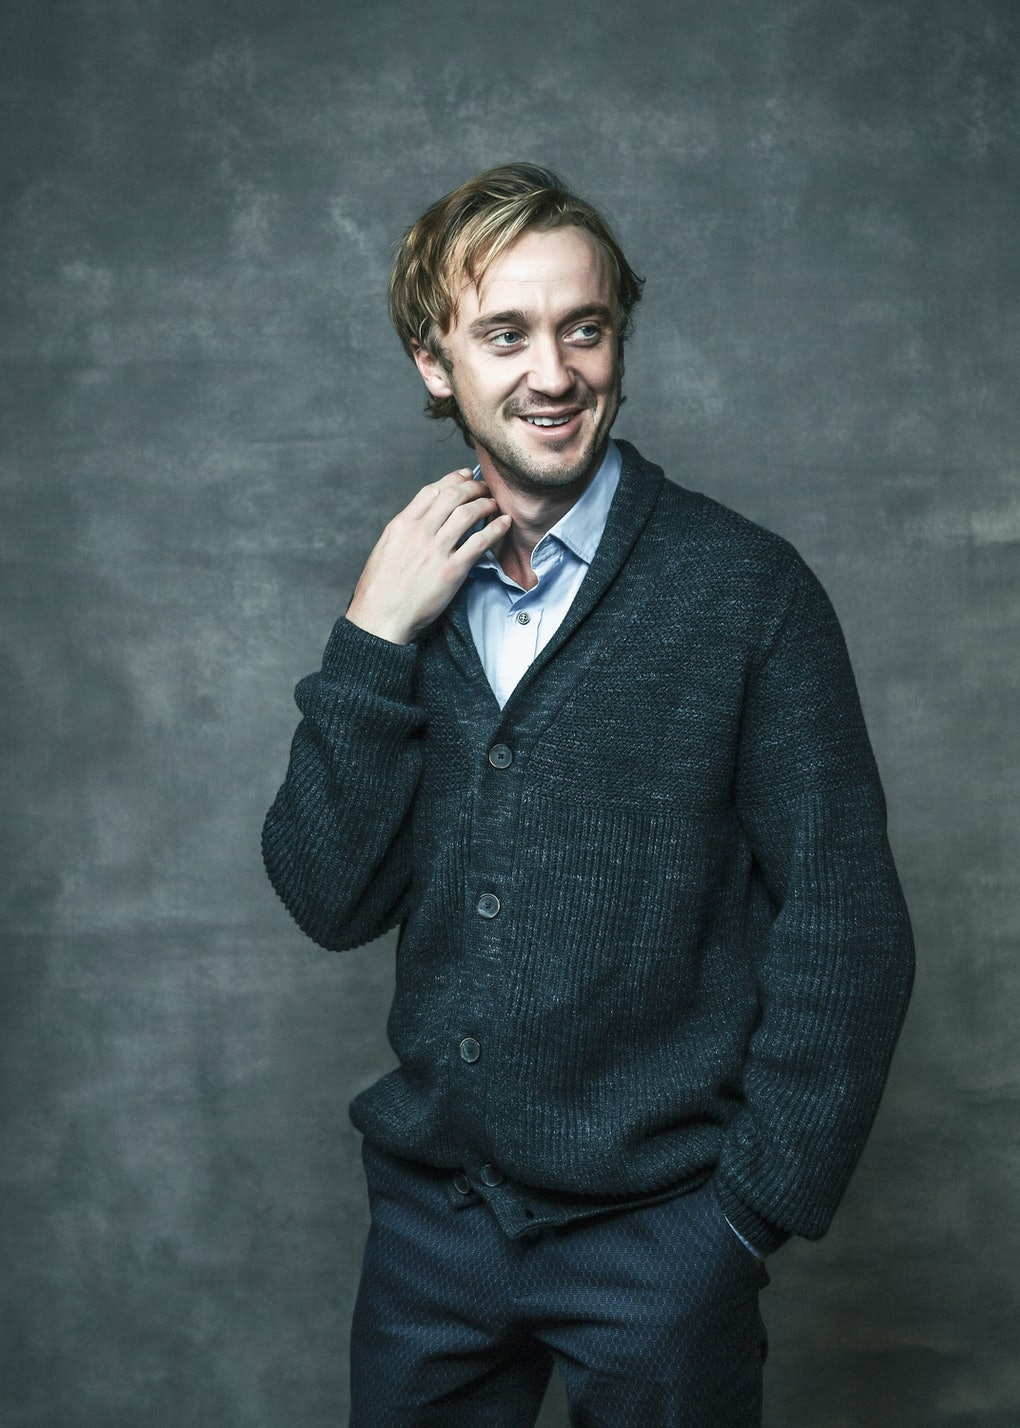 Is Tom Felton Dating Anyone Heres What We Know About His Relationship Status